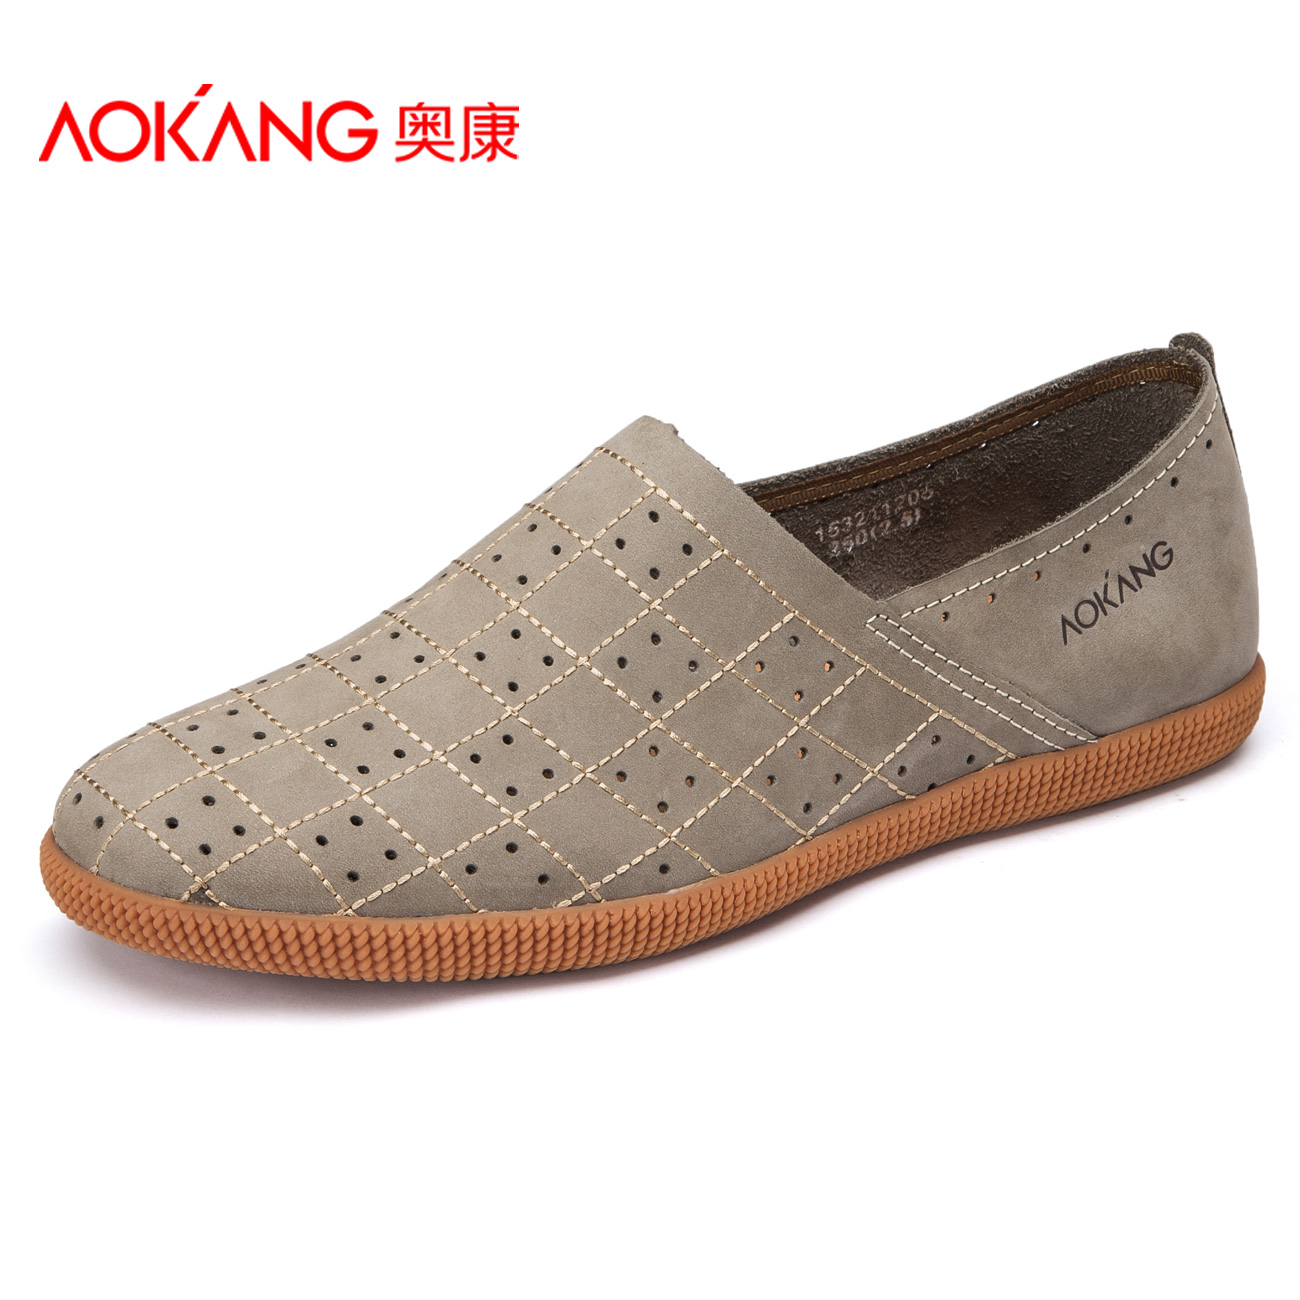 Aokang 2015 New Style Leather Men Loafers Fashion Leather Men 39 S Shoes Flats Casual Loafers Flat